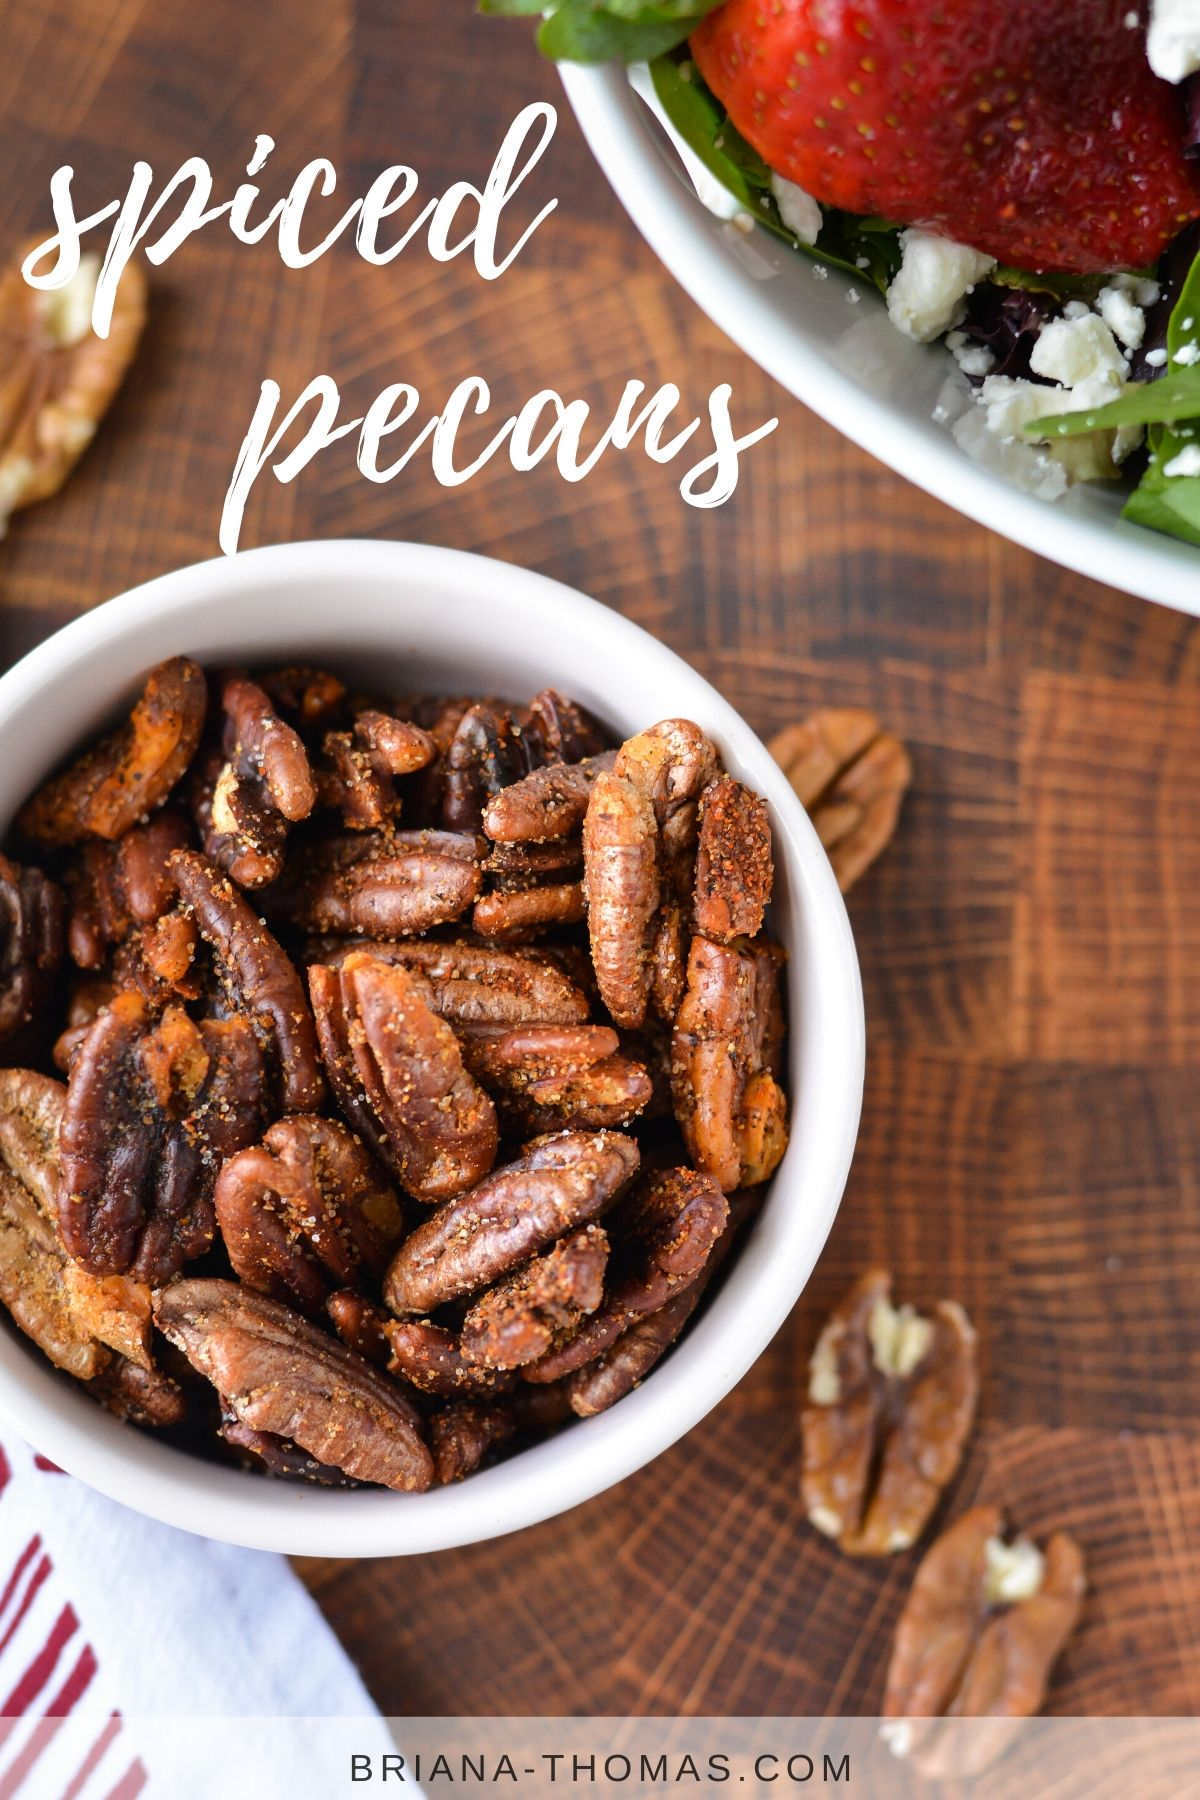 spiced pecans spilling out of a small bowl